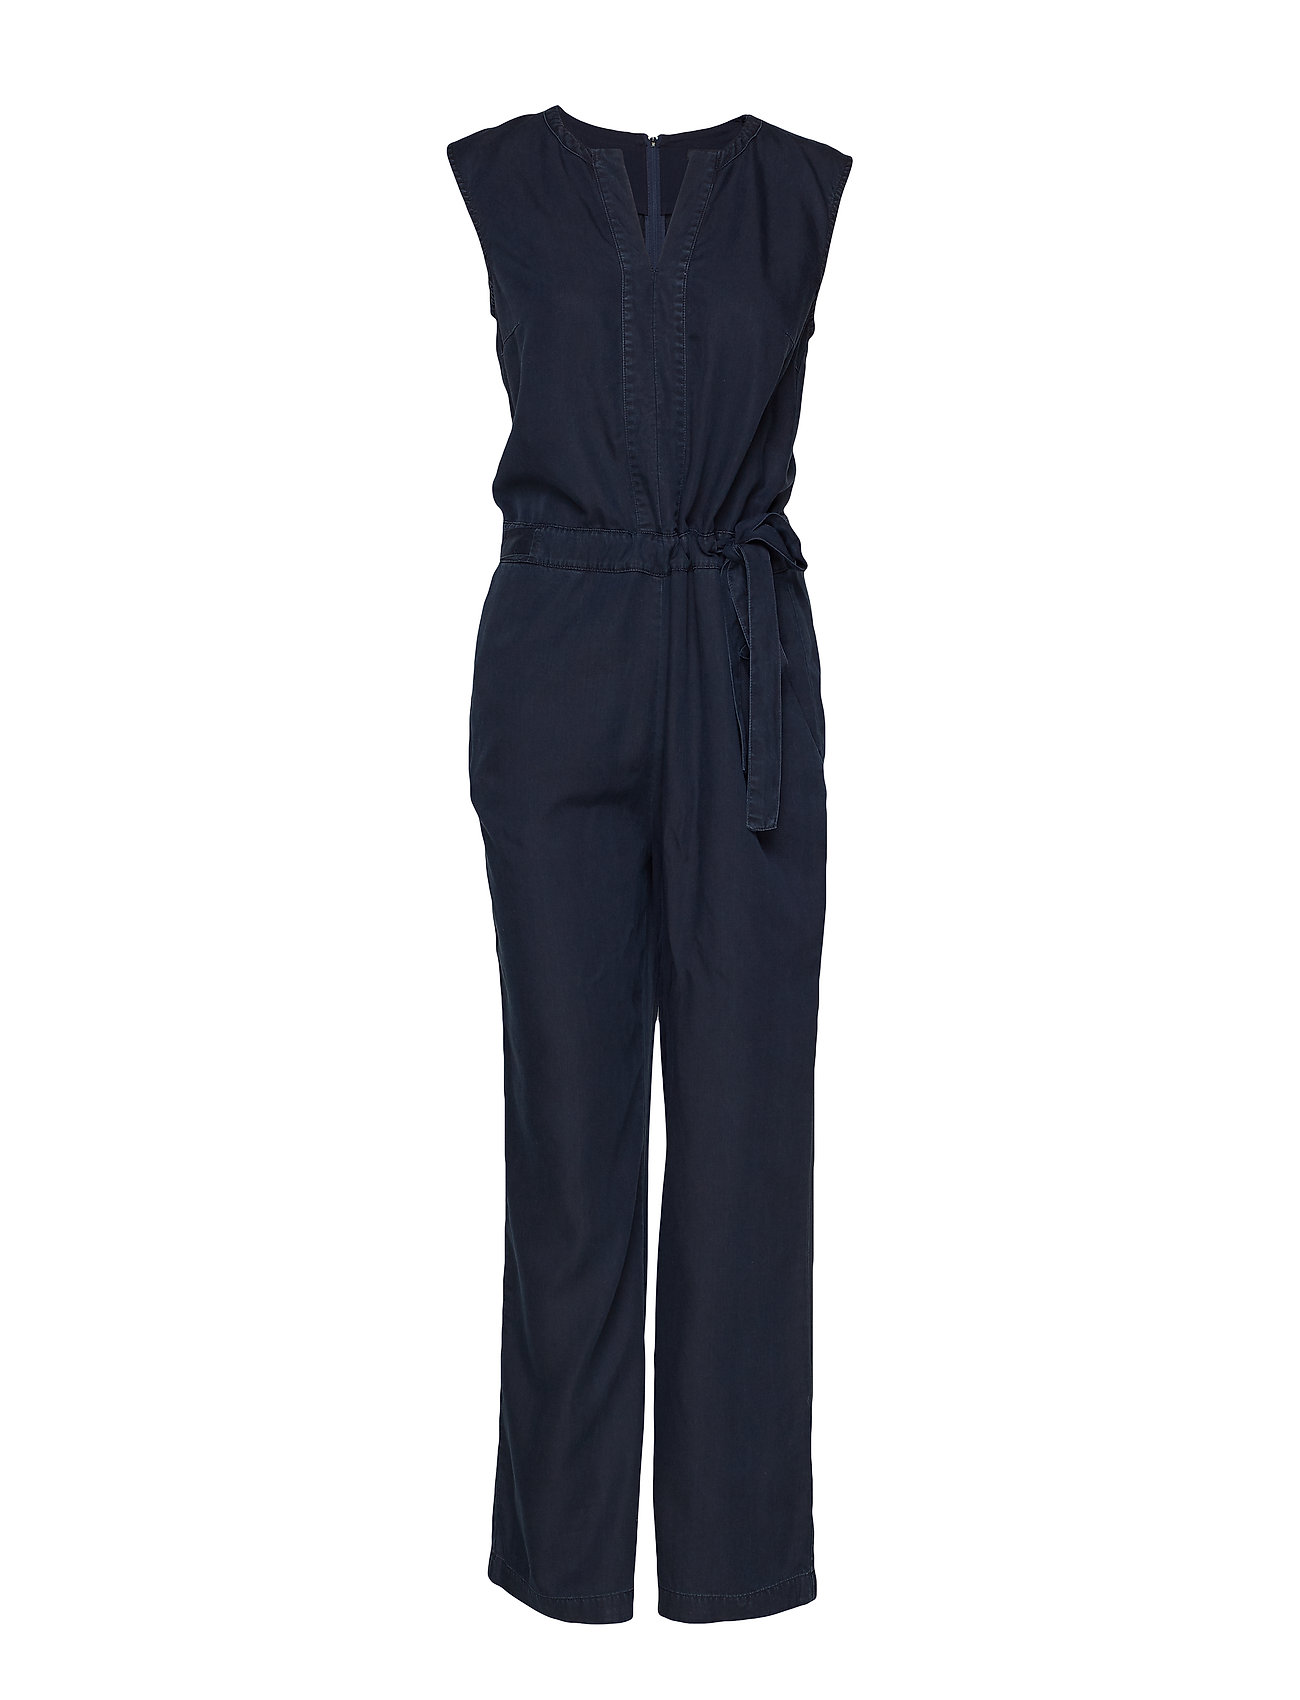 Marc O'Polo Sleeveless Overall - BLUE BLUE DENIM